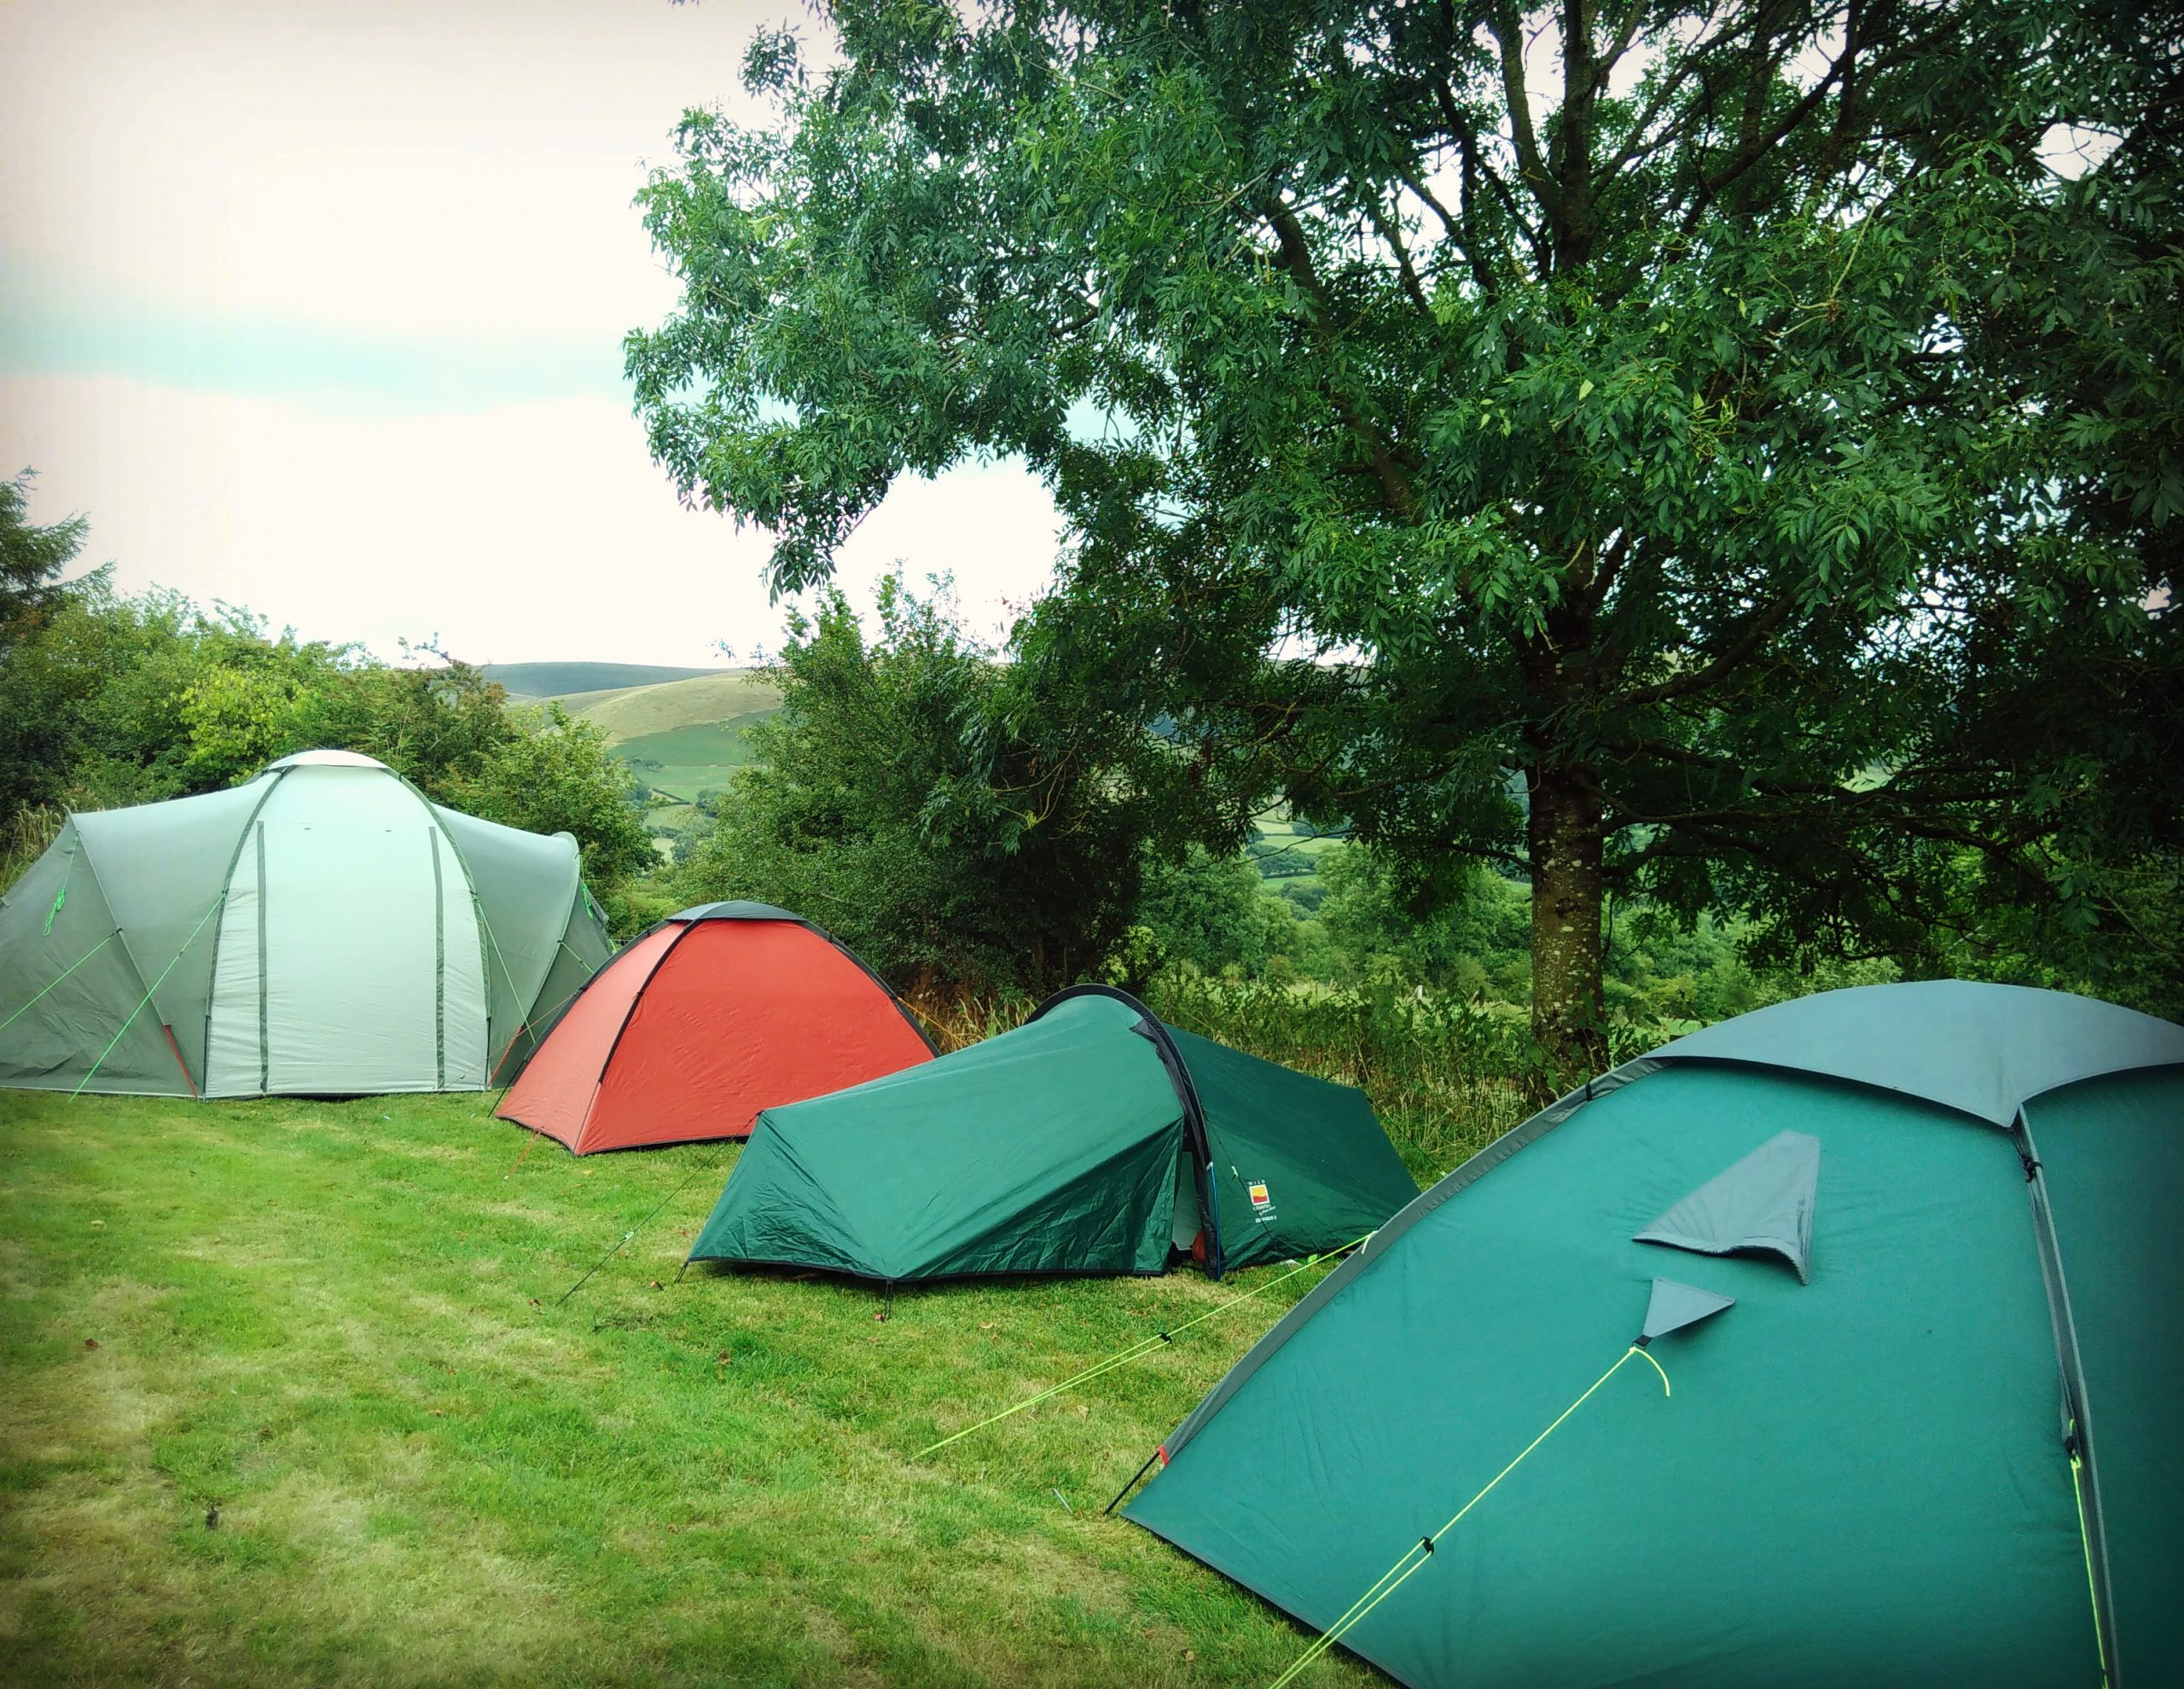 Four tents in a line, in the middle of a green field with trees in the background